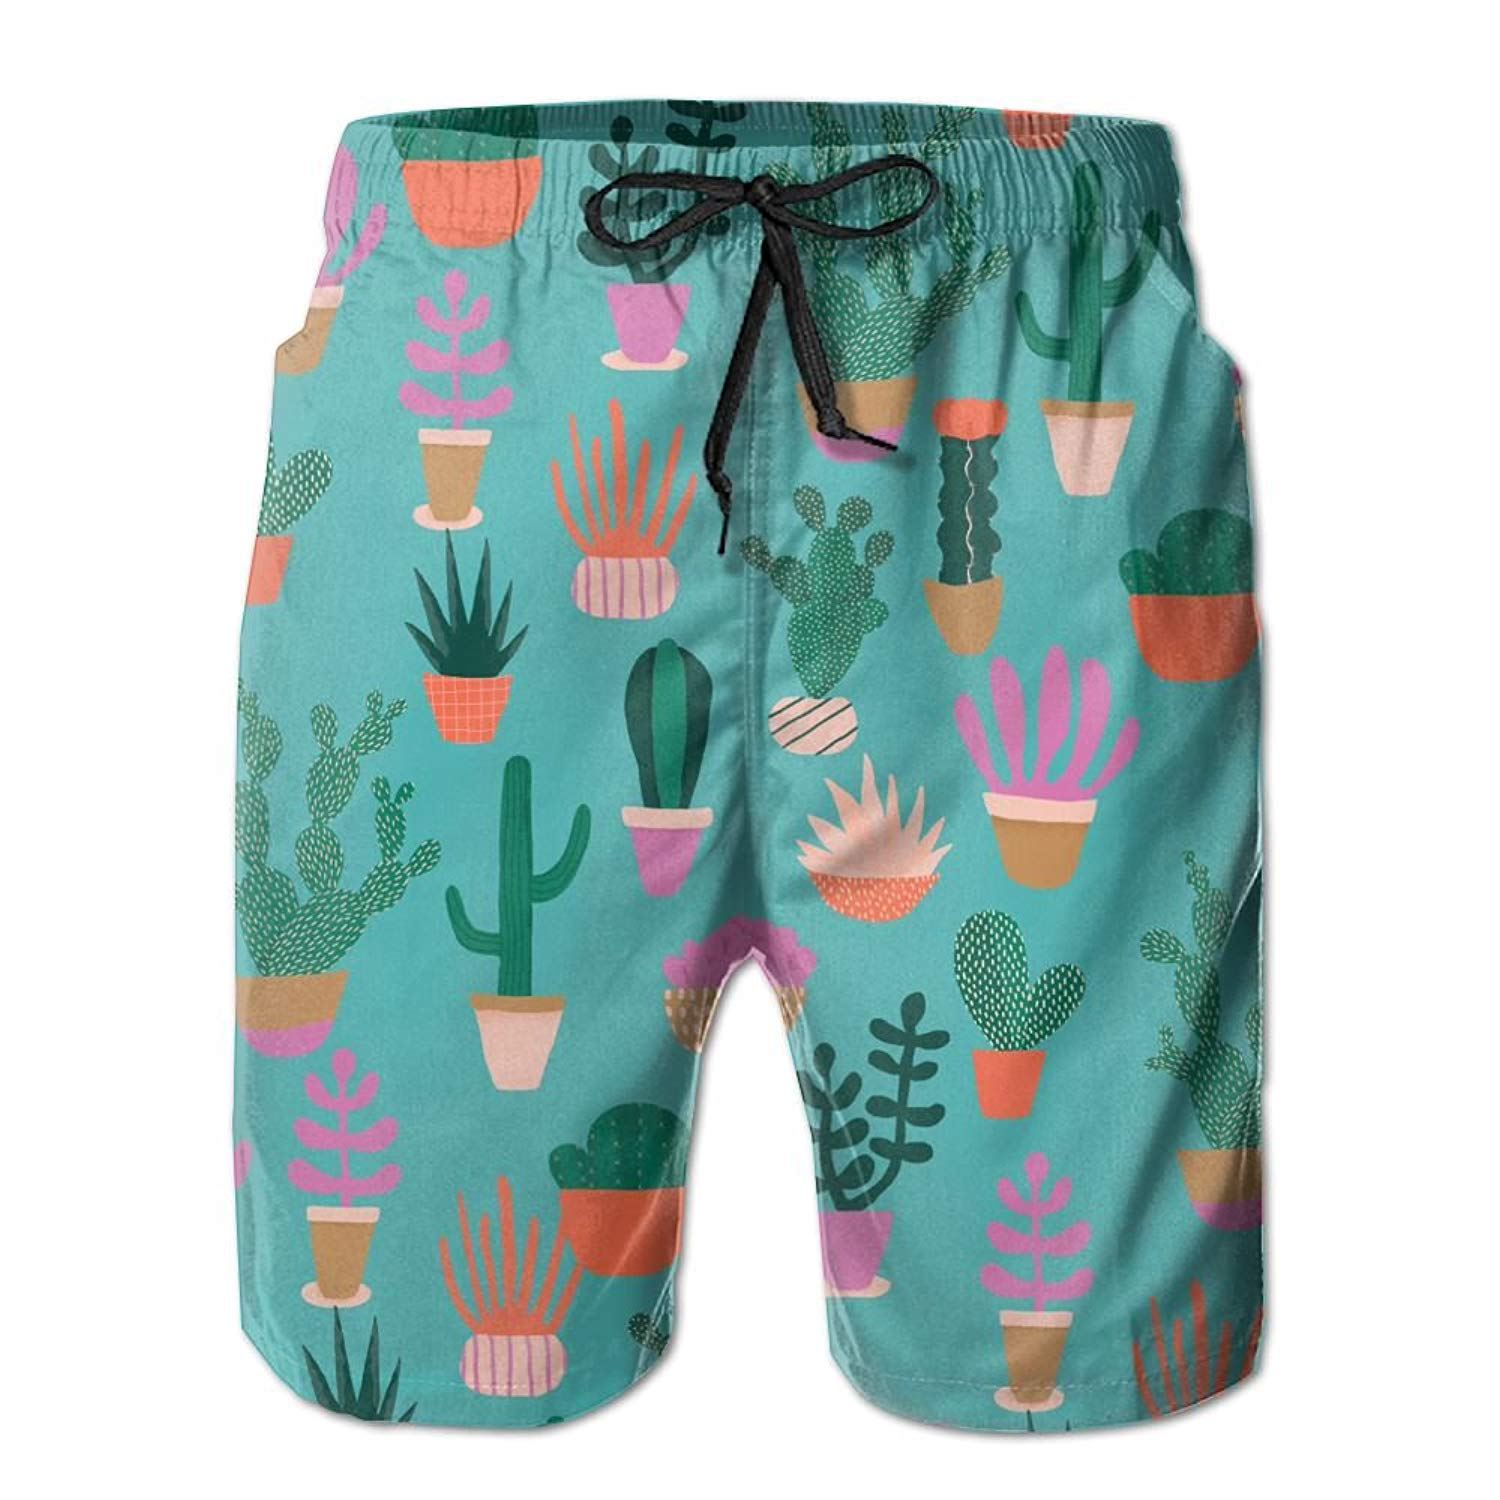 e43ecfc348 Get Quotations · Monwe Cactus Print Boys Summer Casual Shorts,Beach Shorts  Swim Trunks